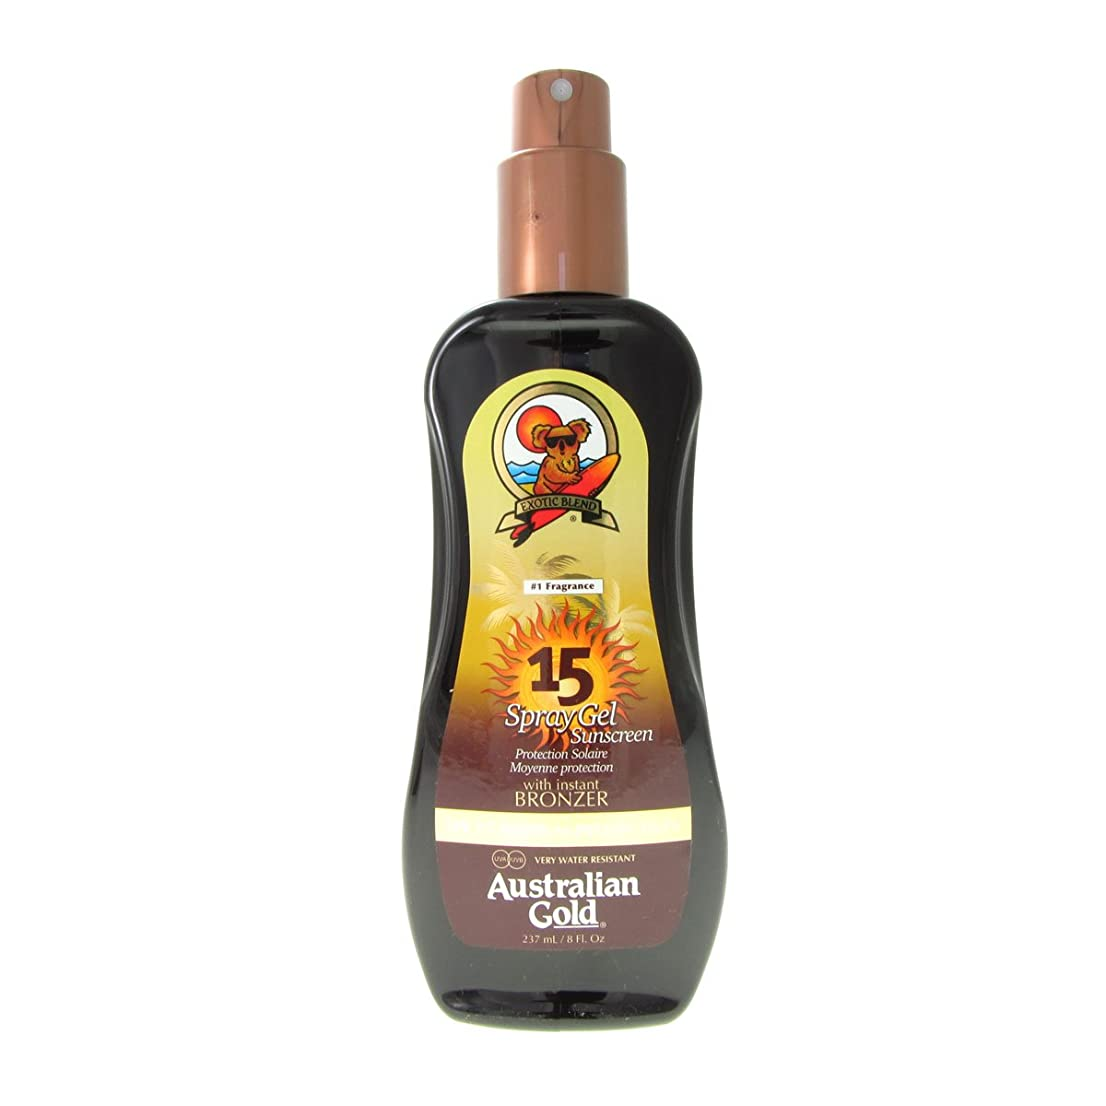 磁石うがい歩行者Australian Gold Spray Gel Spf15 Instant Bronzer 237ml [並行輸入品]